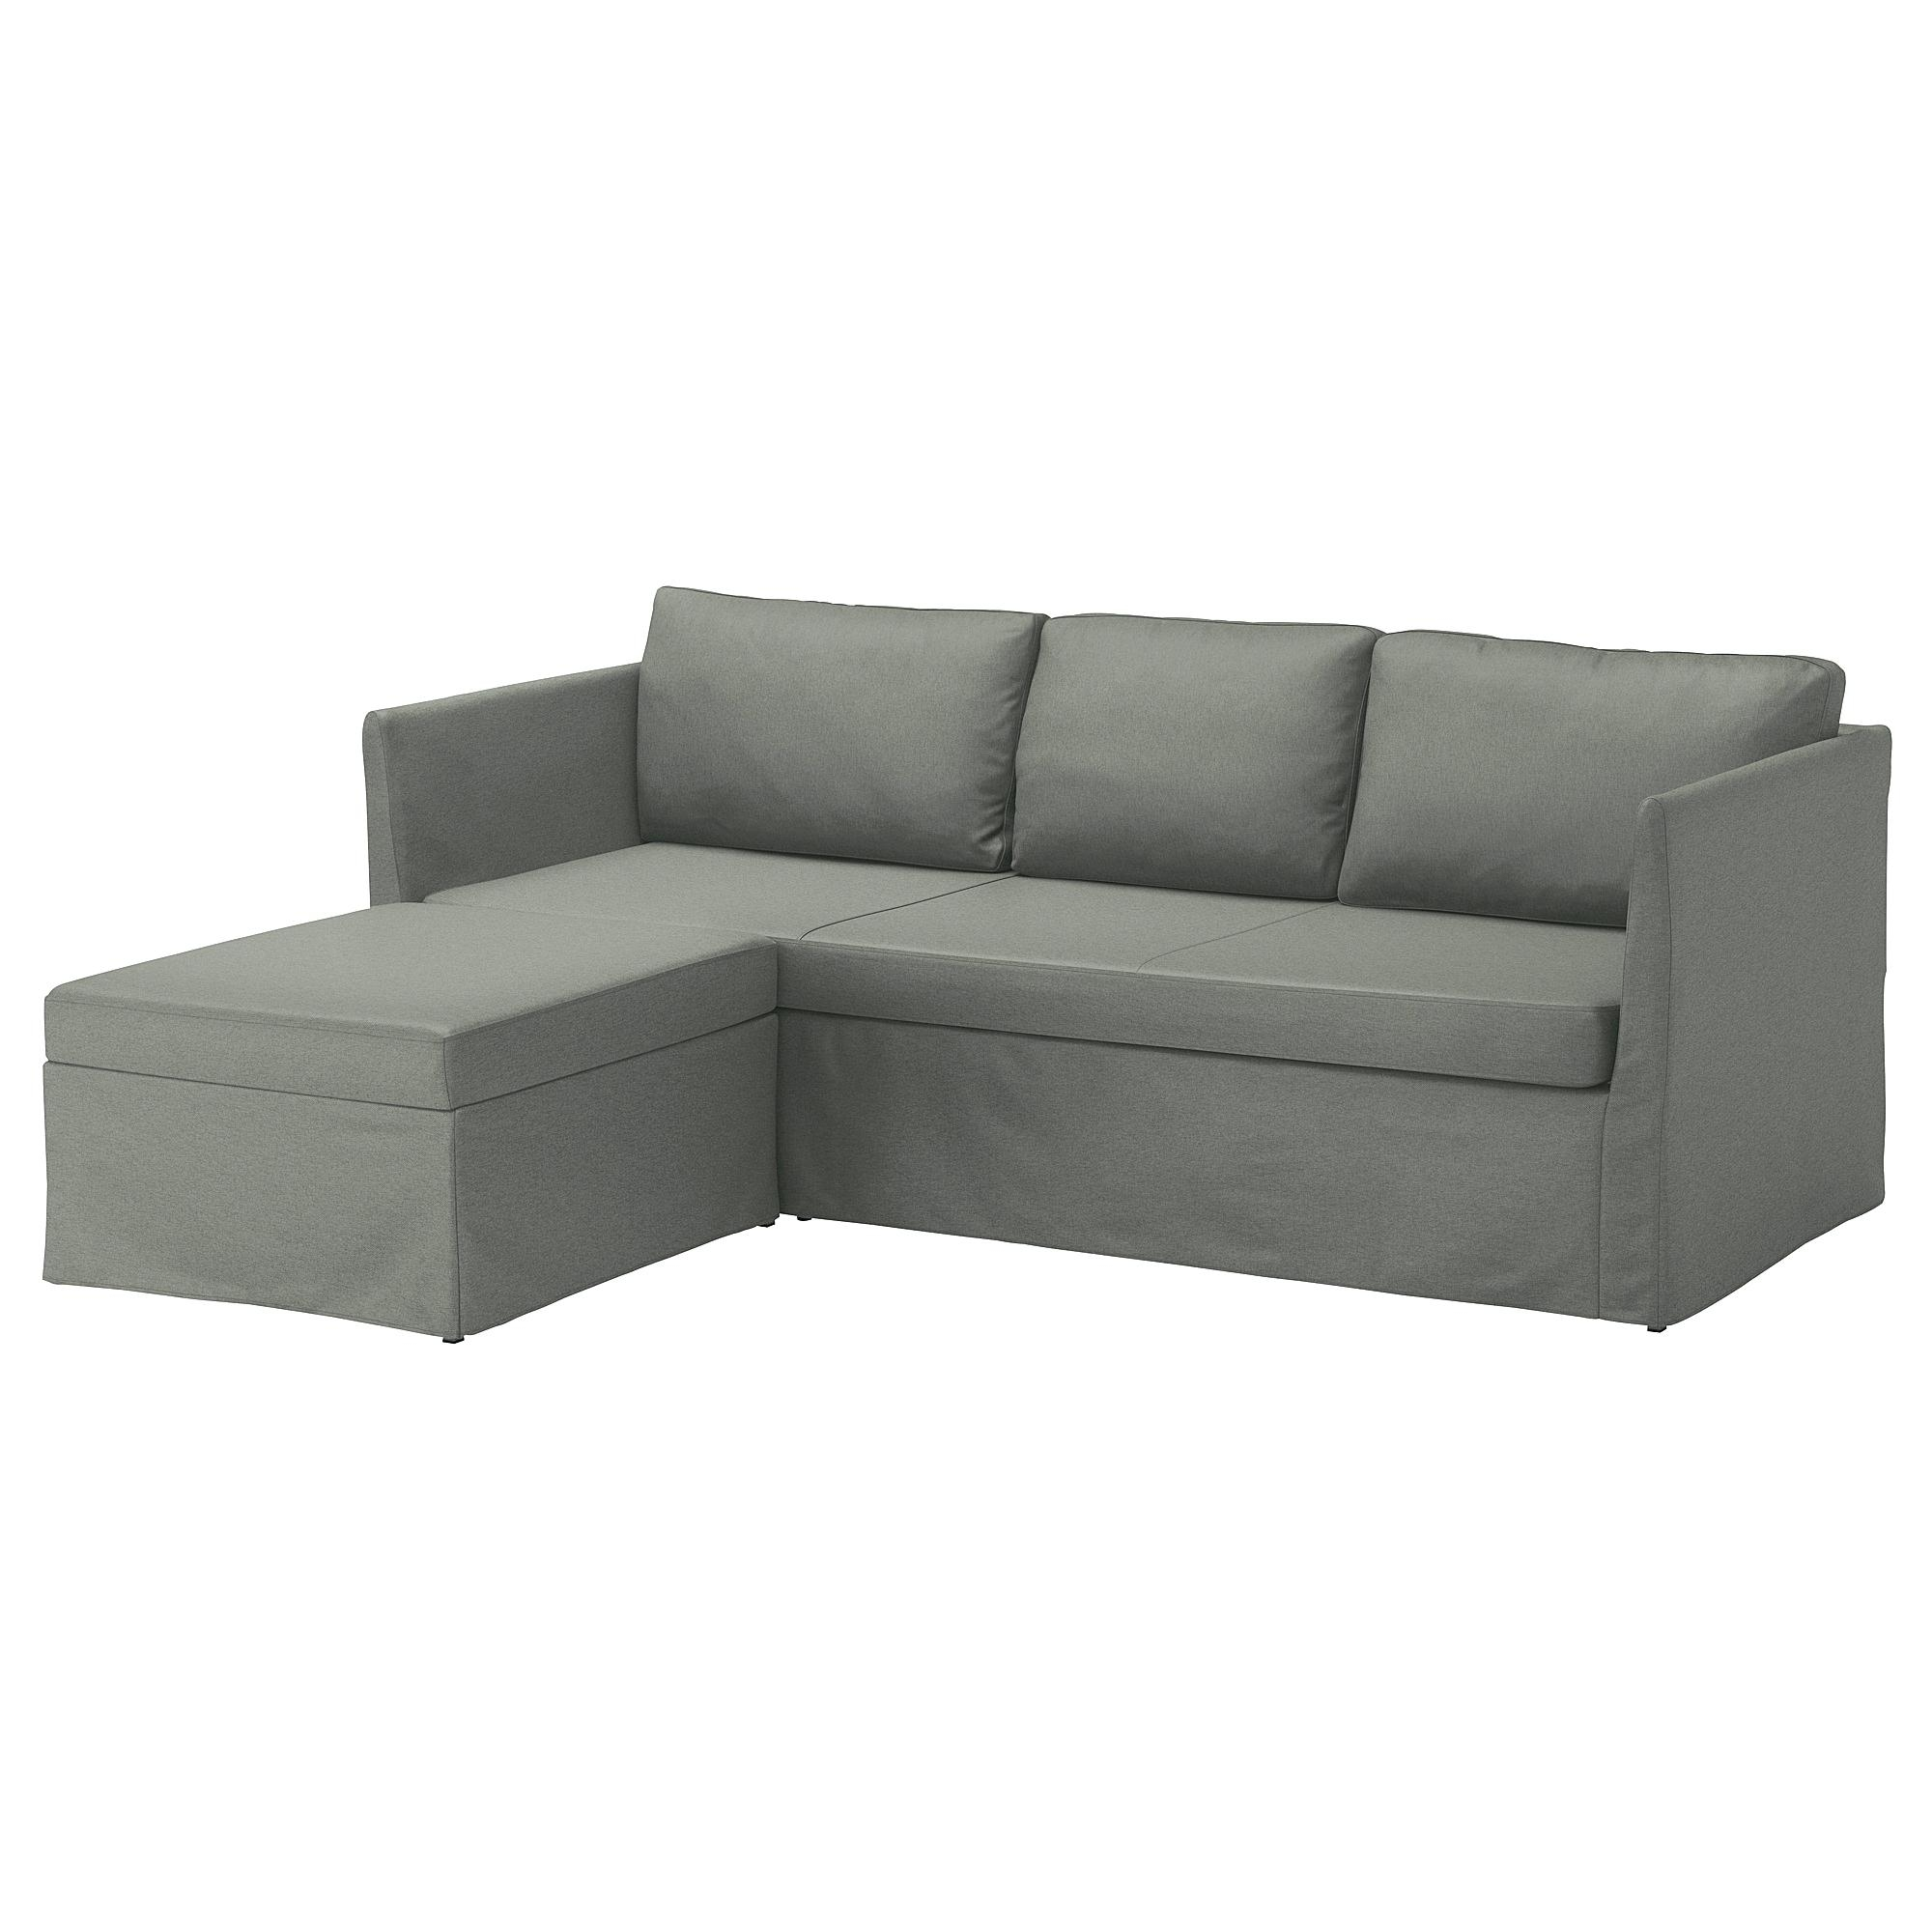 Chaise: Angled Chaise Sofa. Angled Chaise Sectional Sofa. Thornton with regard to Angled Chaise Sofas (Image 6 of 10)